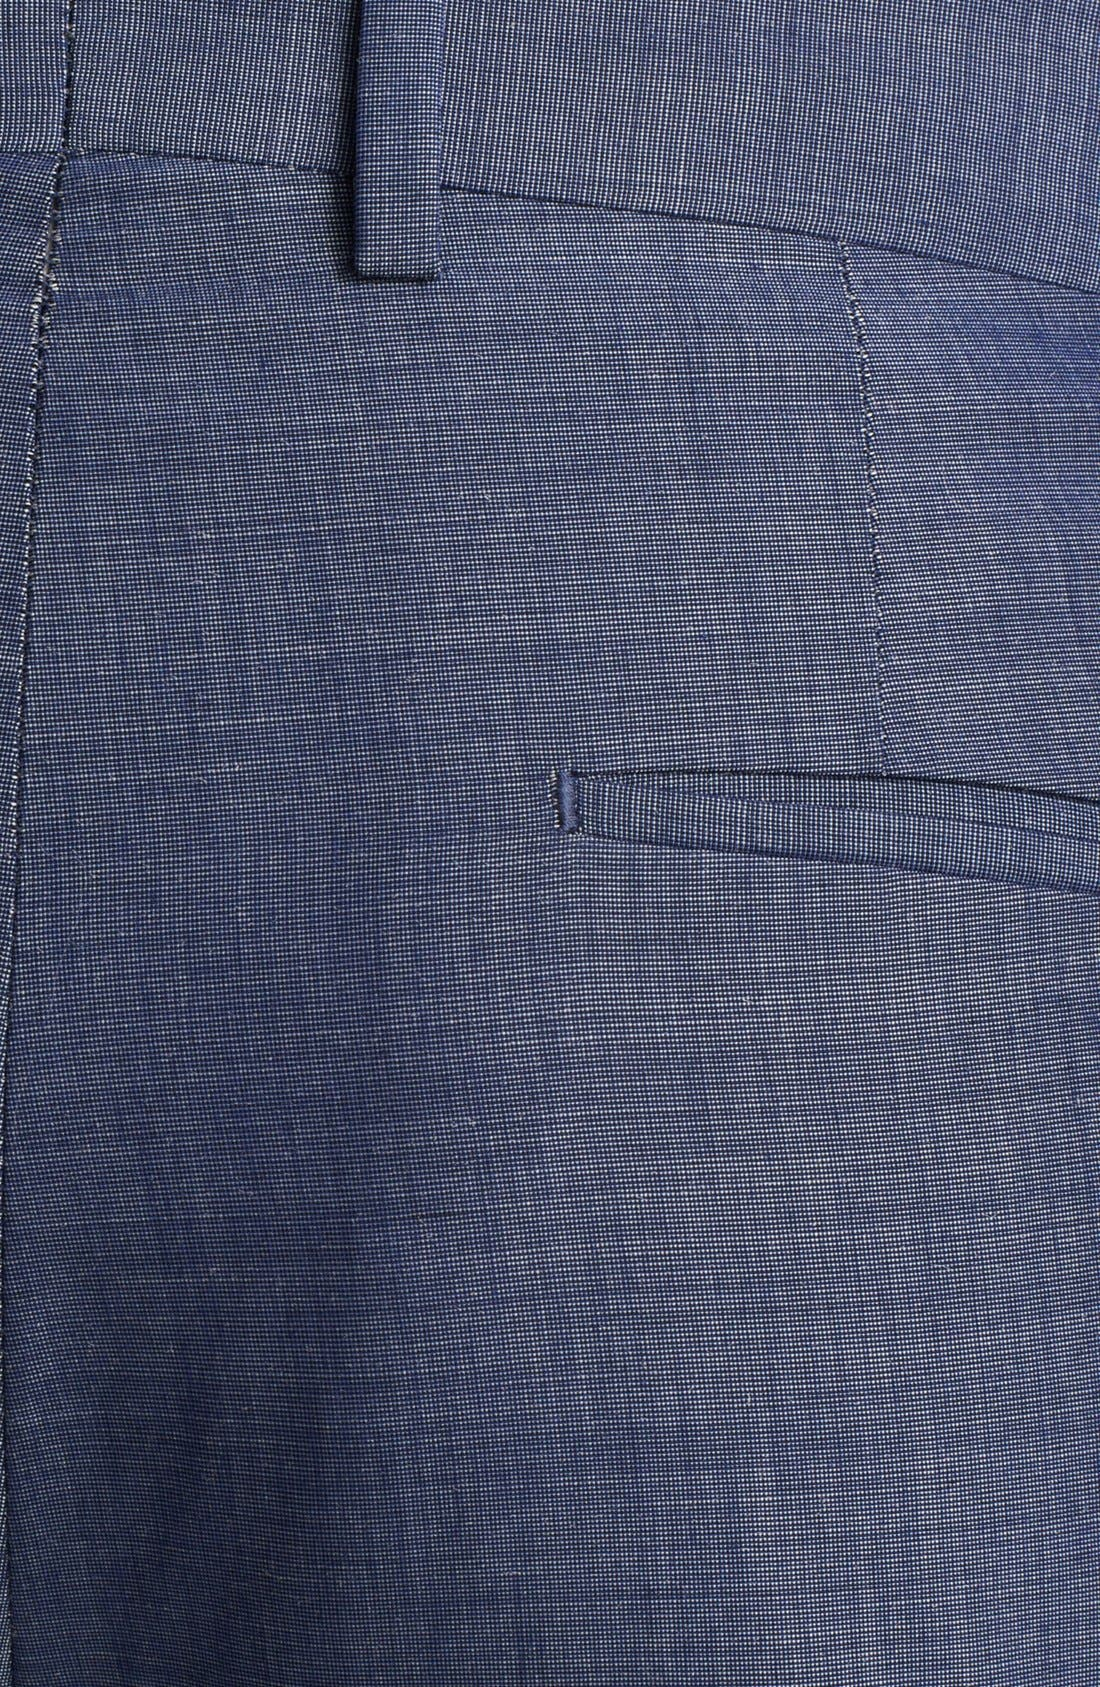 Alternate Image 3  - PS Paul Smith Slim Fit Textured Pants